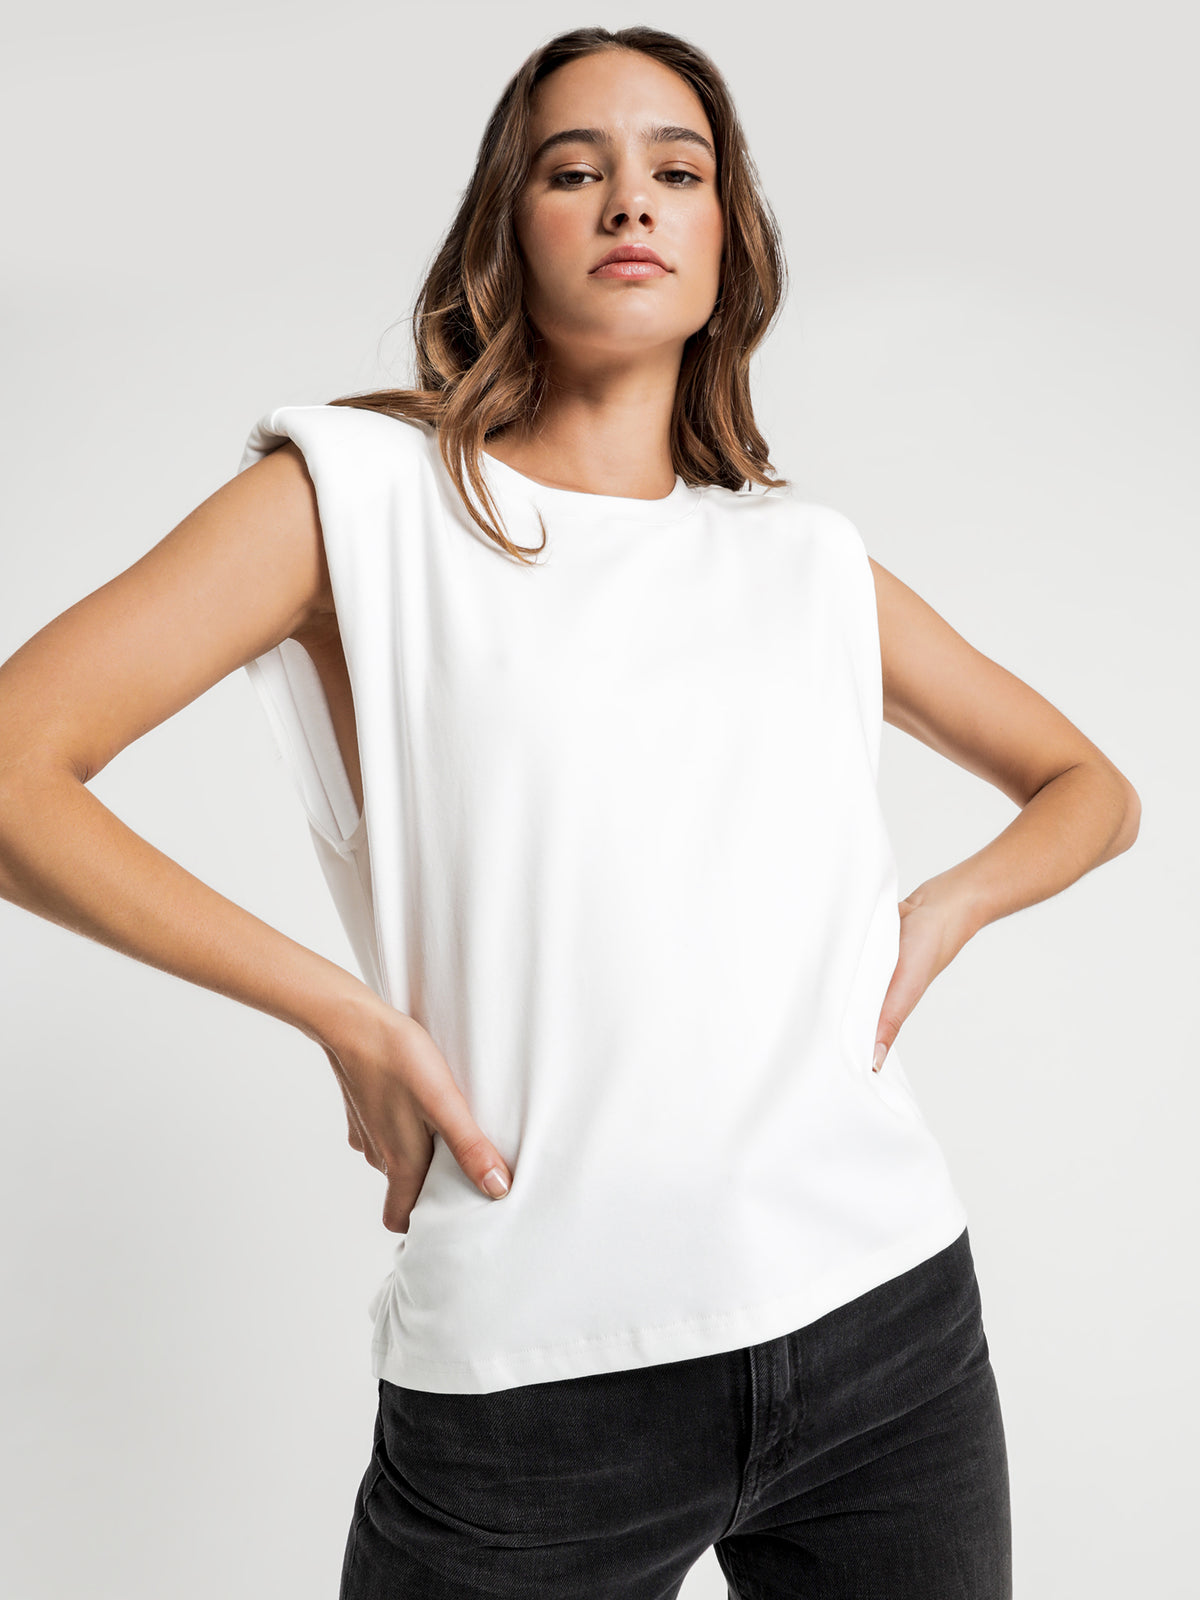 Venice T-Shirt in White